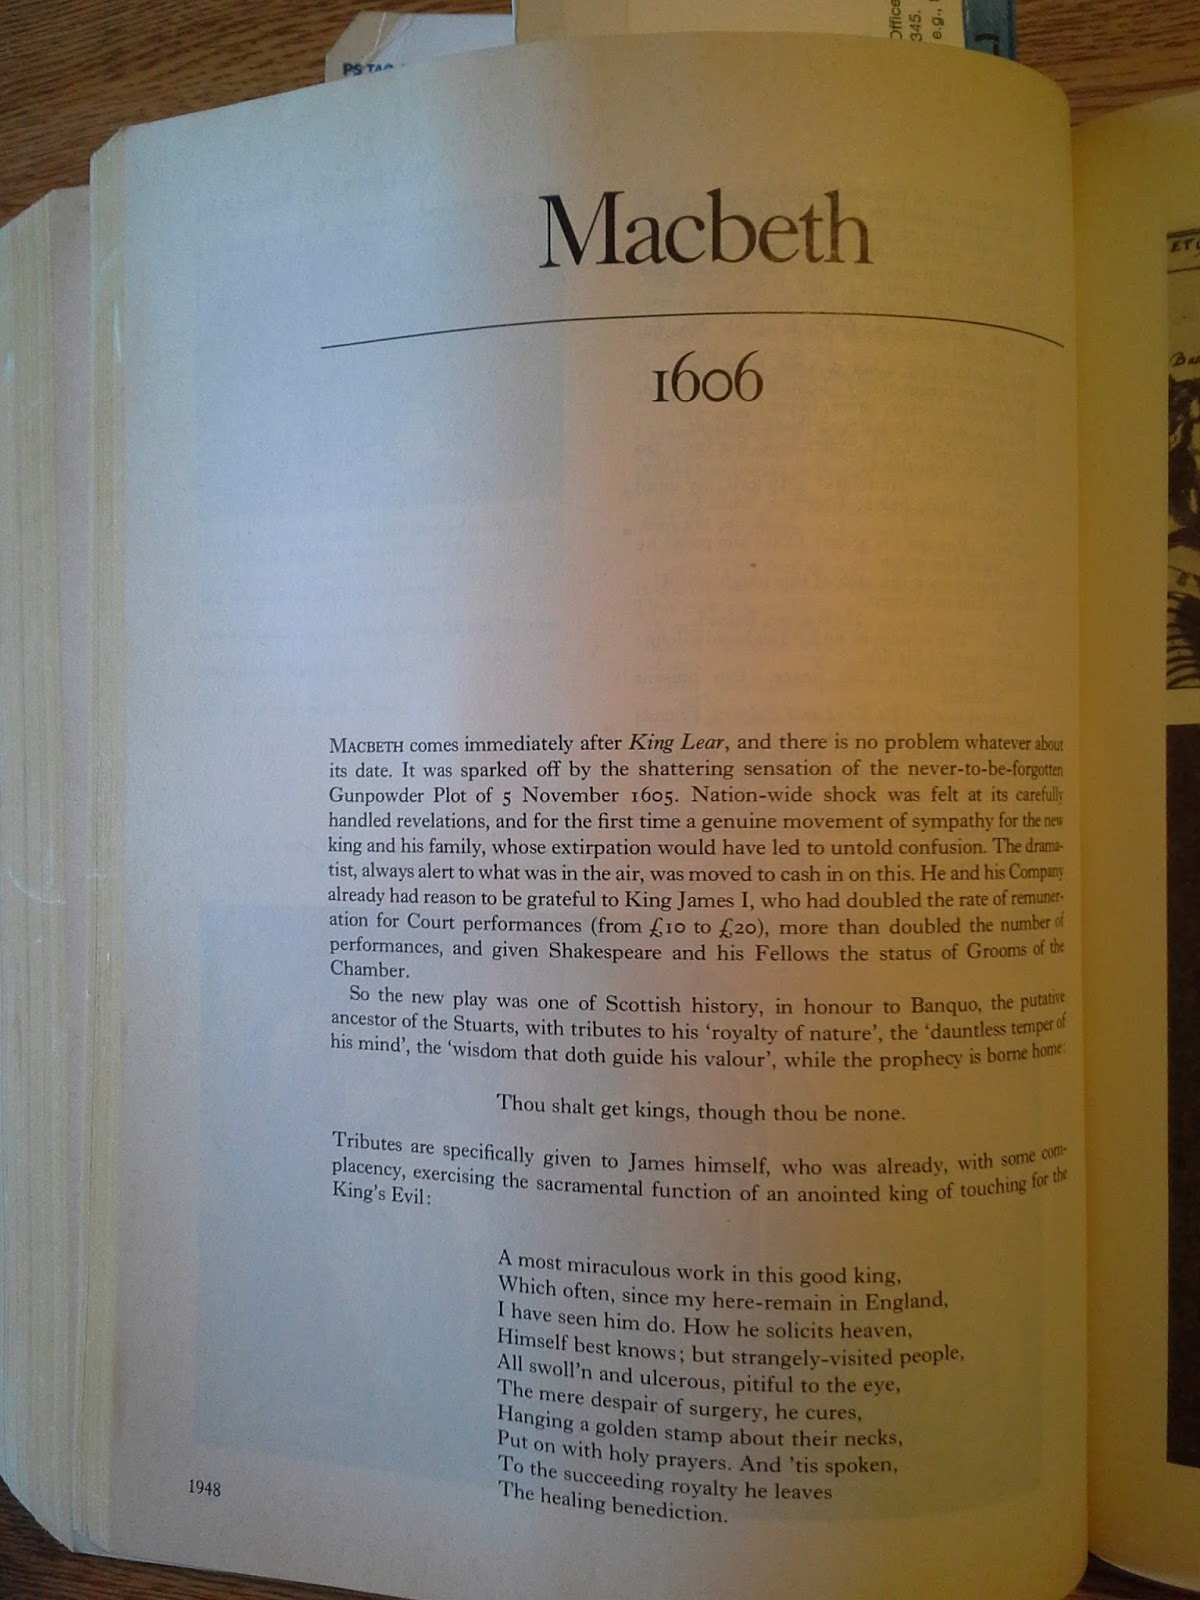 the evil deed that macbeth commited in the play macbeth by william shakespeare Shakespeare created his heroes to  such as macbeth it presents the mystery of suffering and action  documents similar to thomas beckett historical figure.